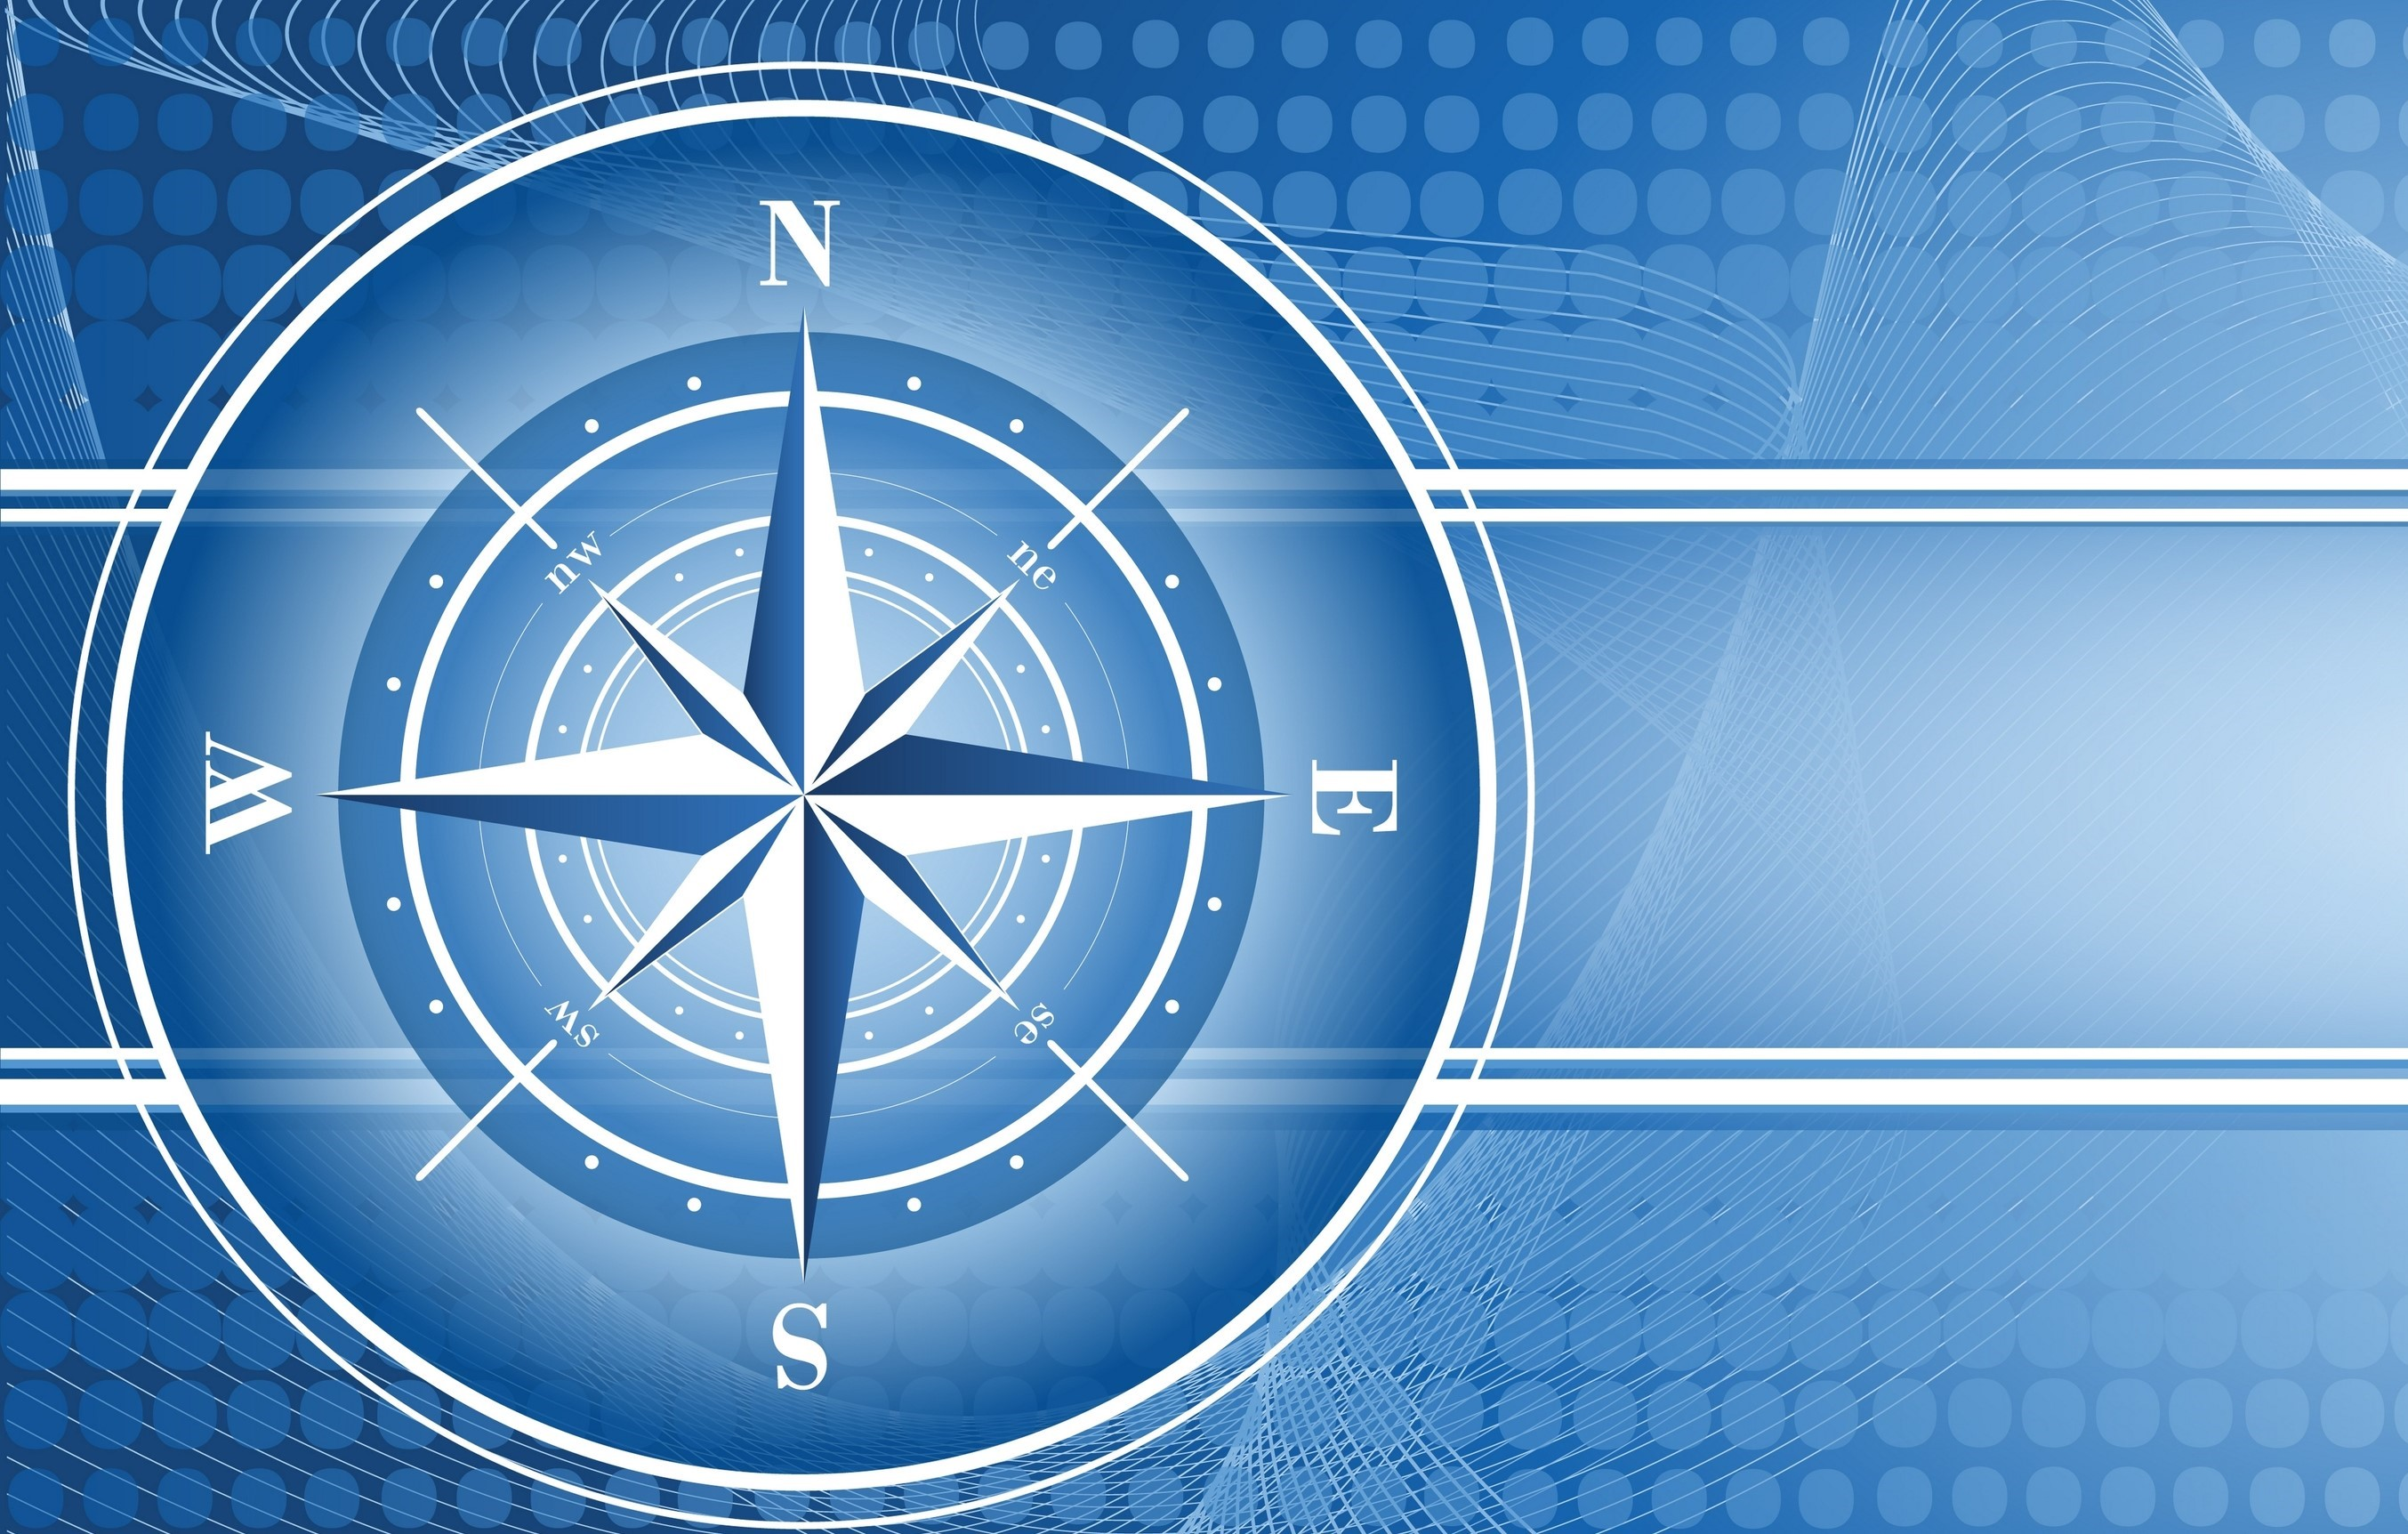 Compass_PIC_blue